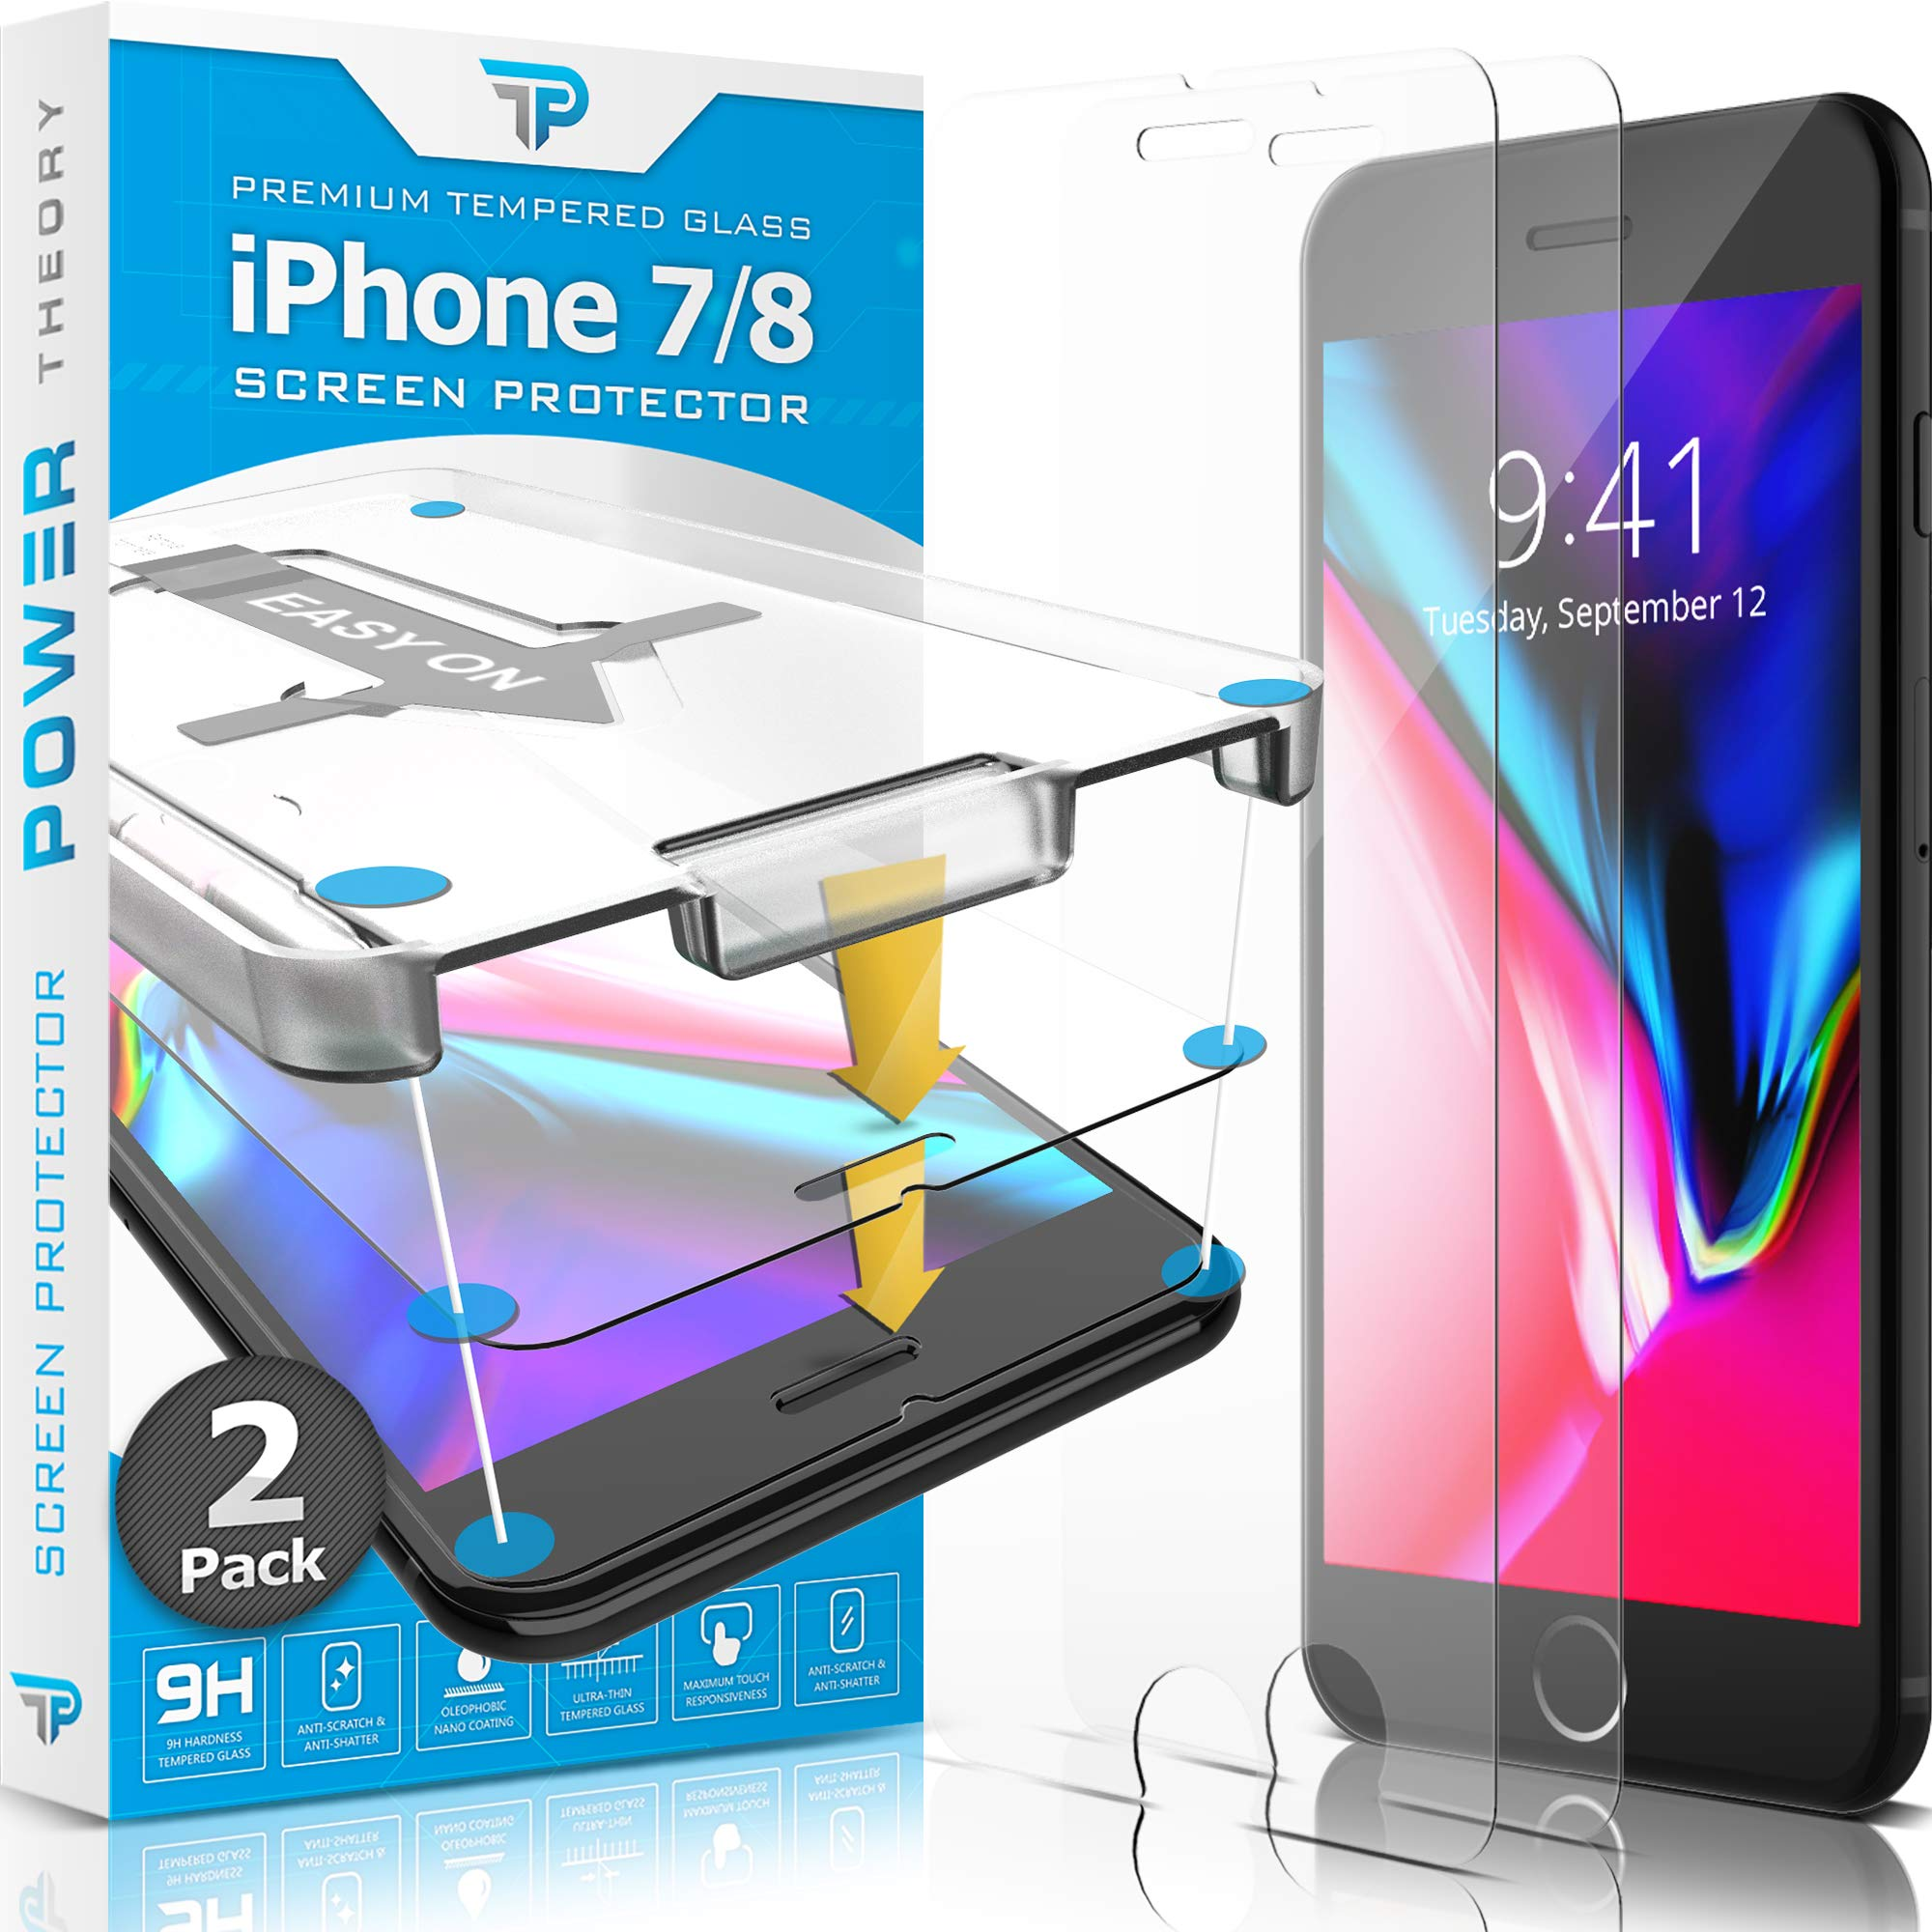 Power Theory iPhone 8 / iPhone 7 Glass Screen Protector [2-Pack] with Easy Install Kit [Premium Tempered Glass] by Power Theory